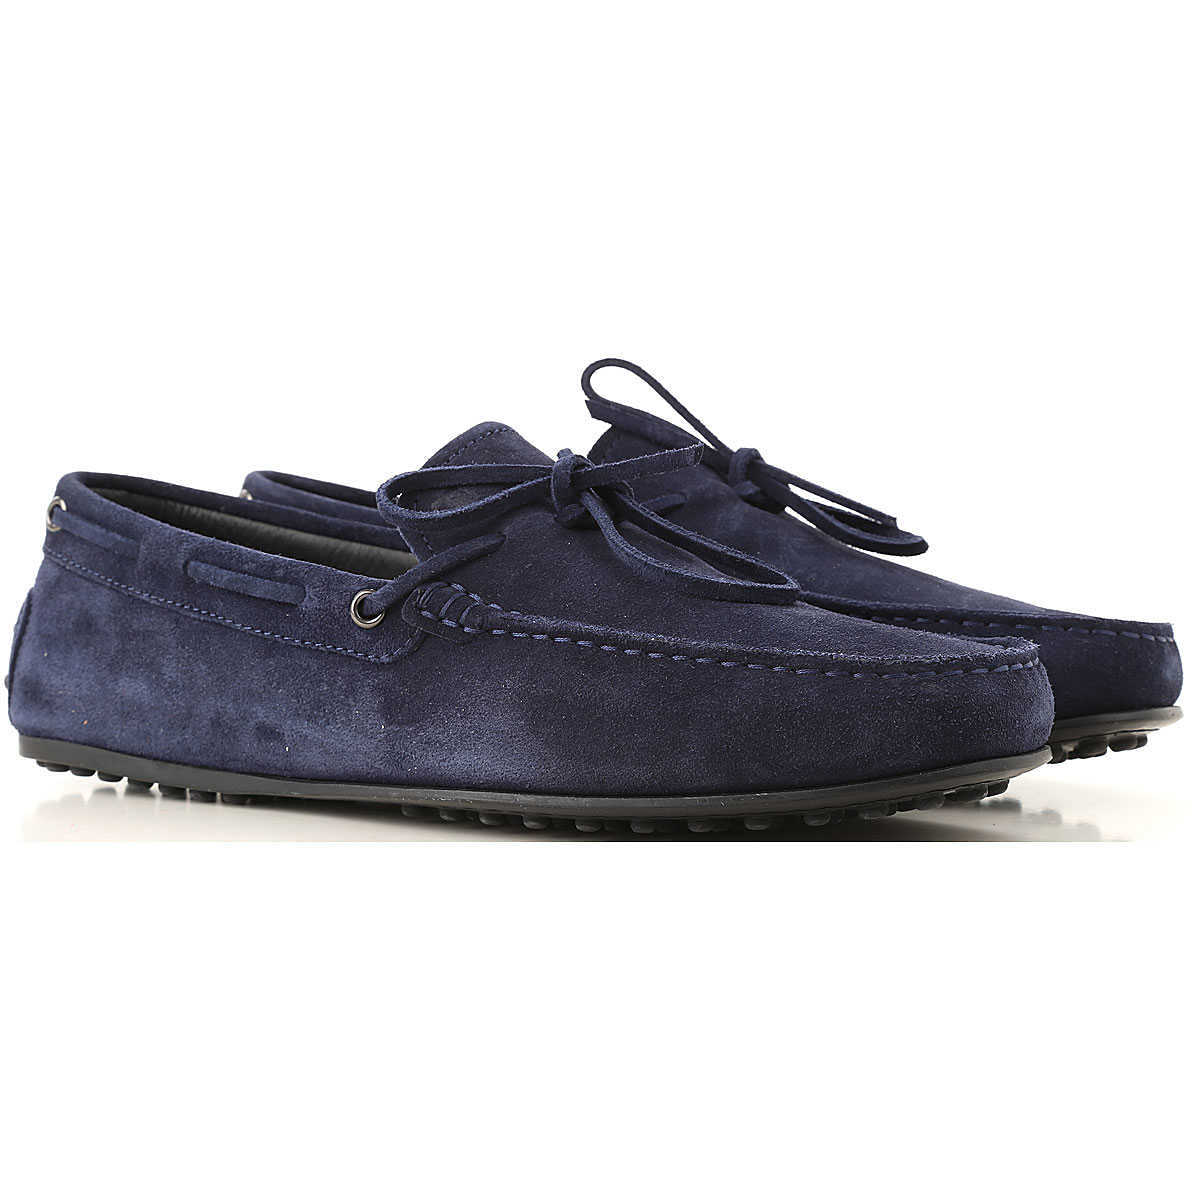 Tods Loafers for Men On Sale galaxy blue UK - GOOFASH